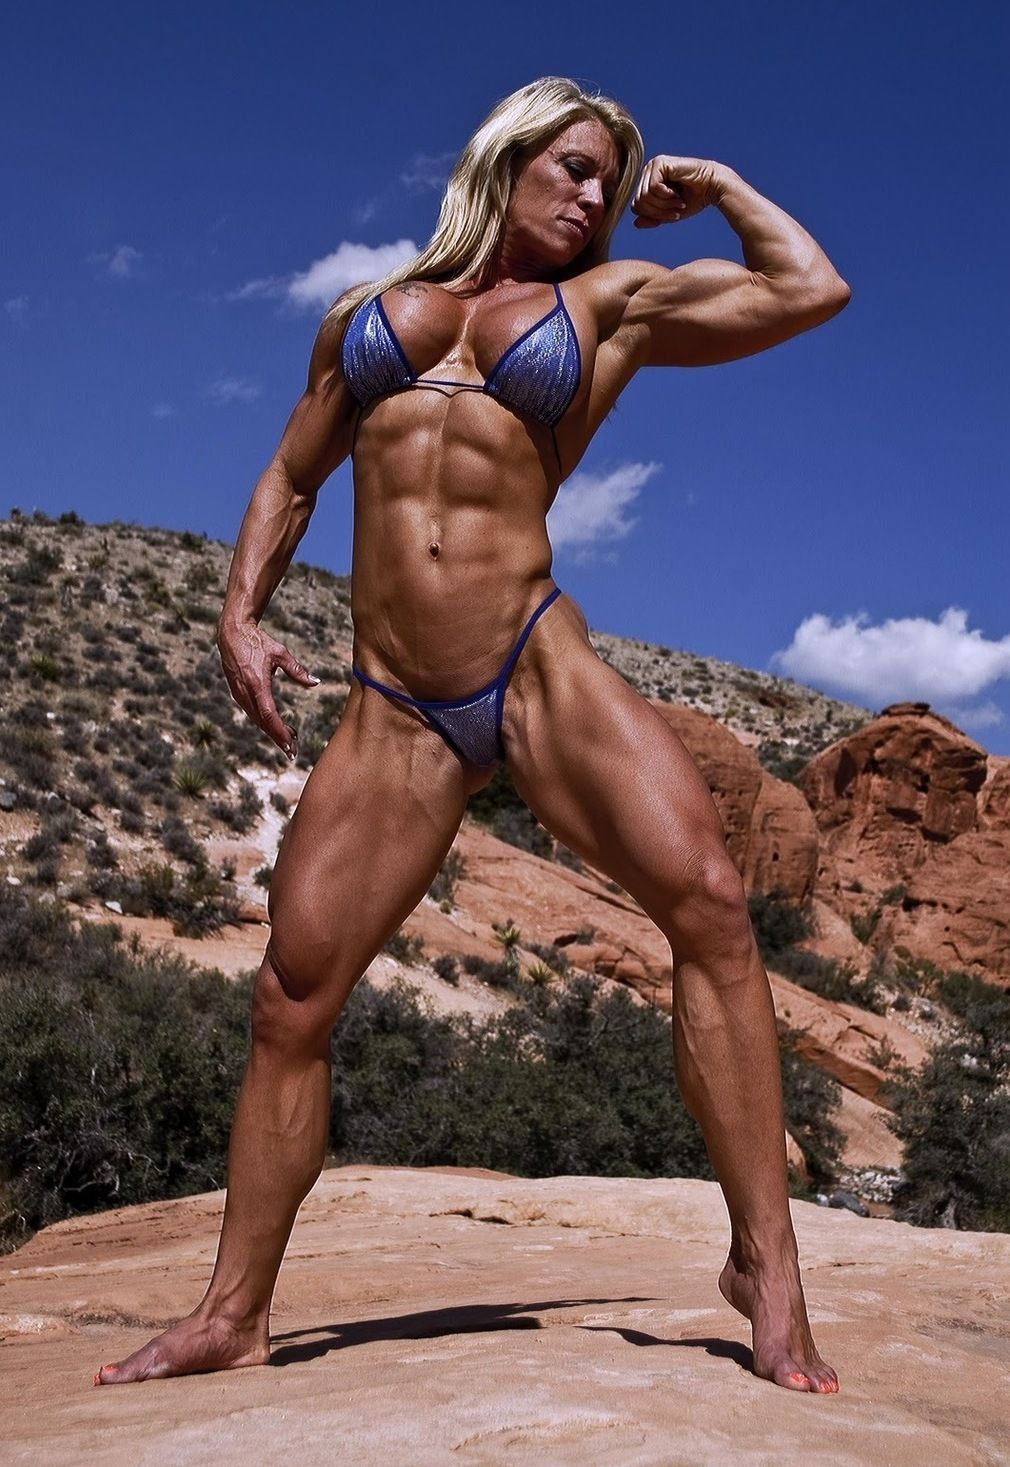 Women bodybuilder nude posing